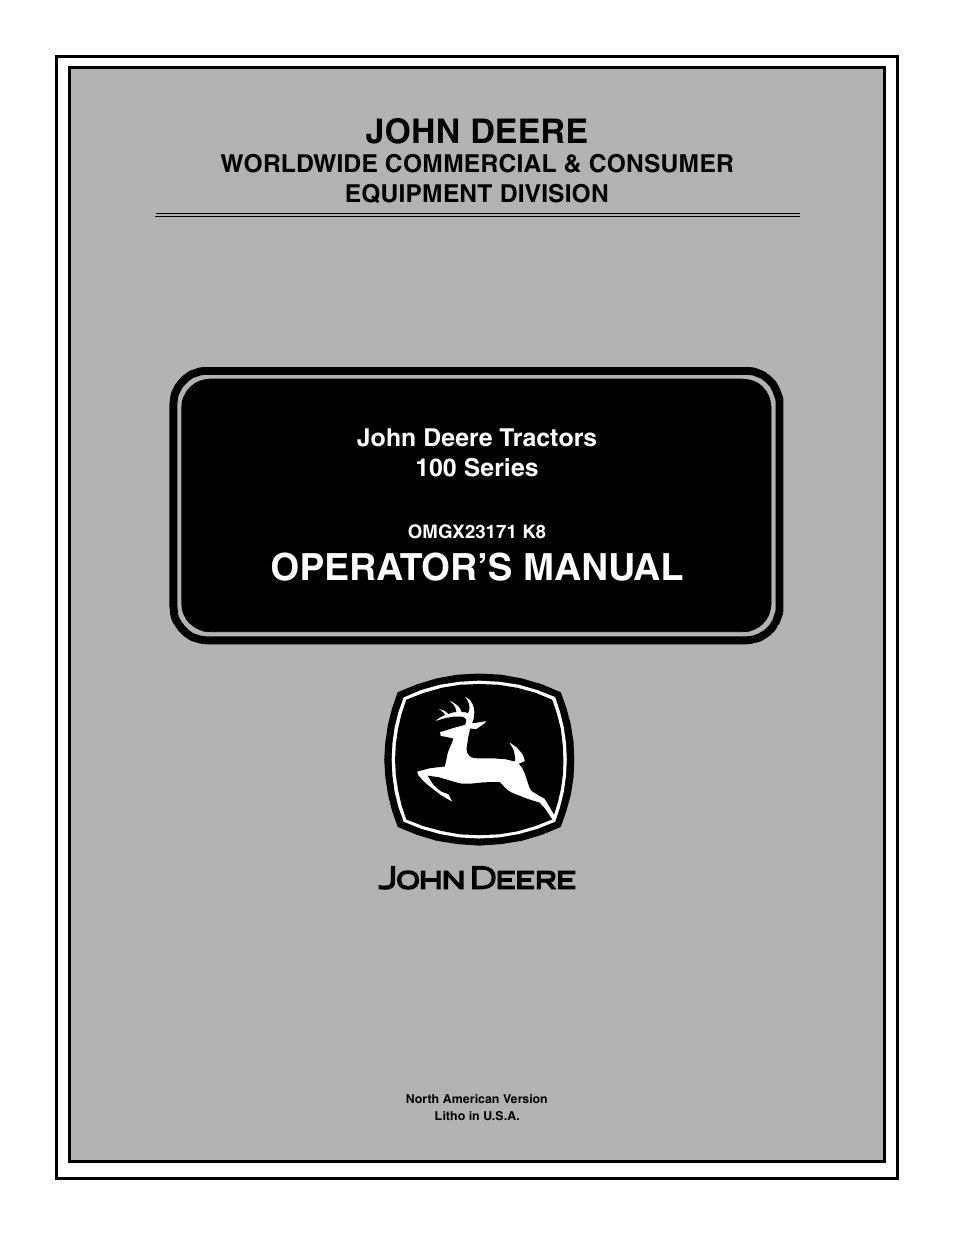 John Deere la105 User Manual | 52 pages | Also for: Tractors 100 Series,  LA115, LA125, LA135, LA145, LA155, LA165, LA175